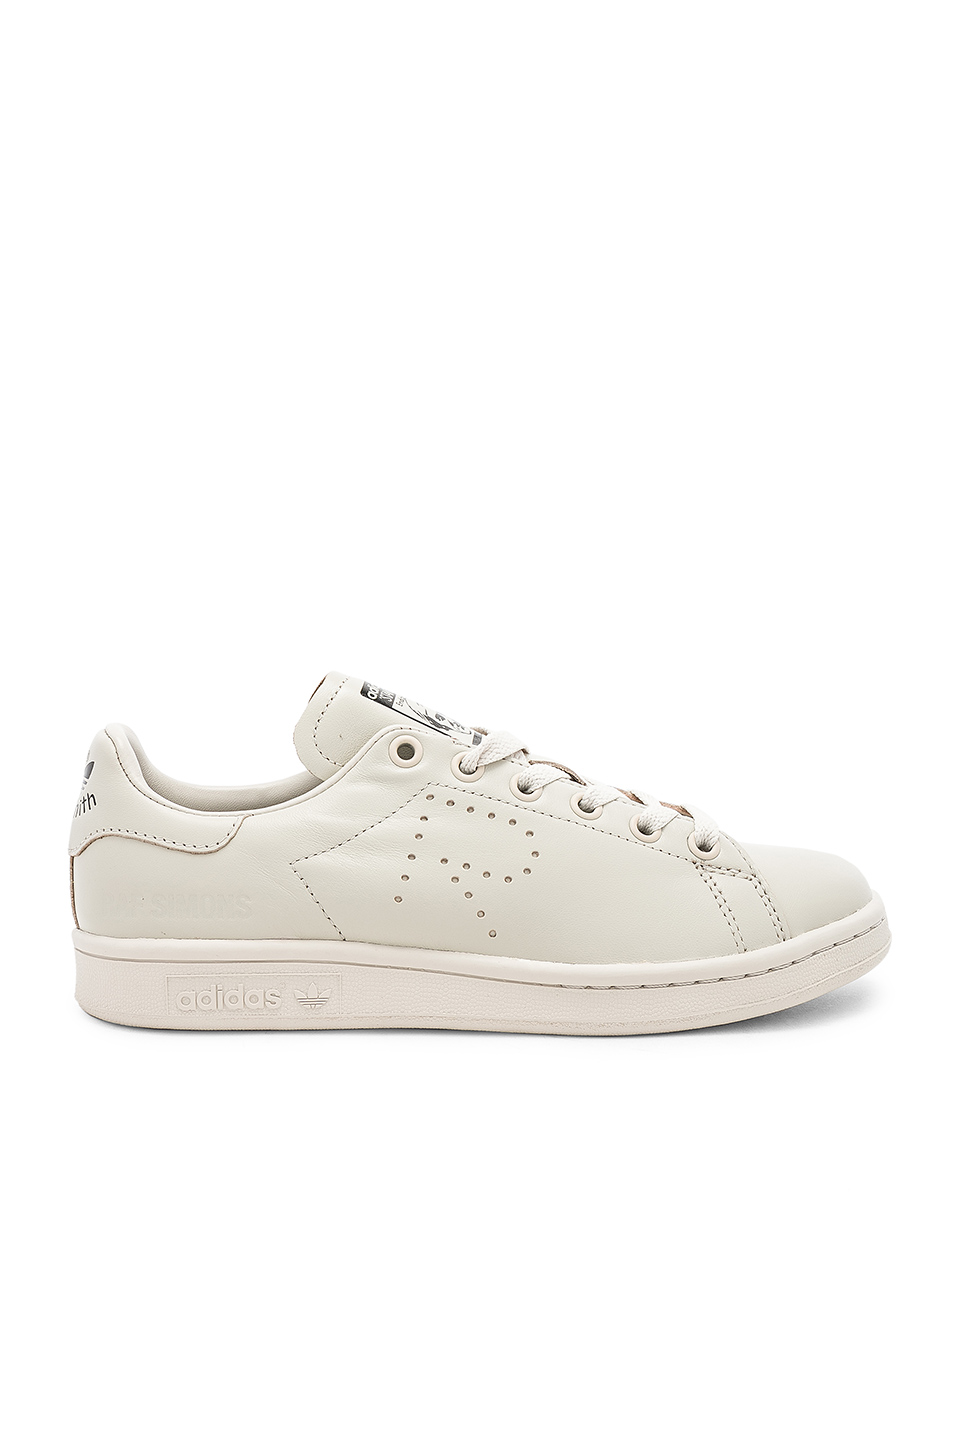 newest 2f75e dca84 Stan Smith Sneaker, adidas by Raf Simons